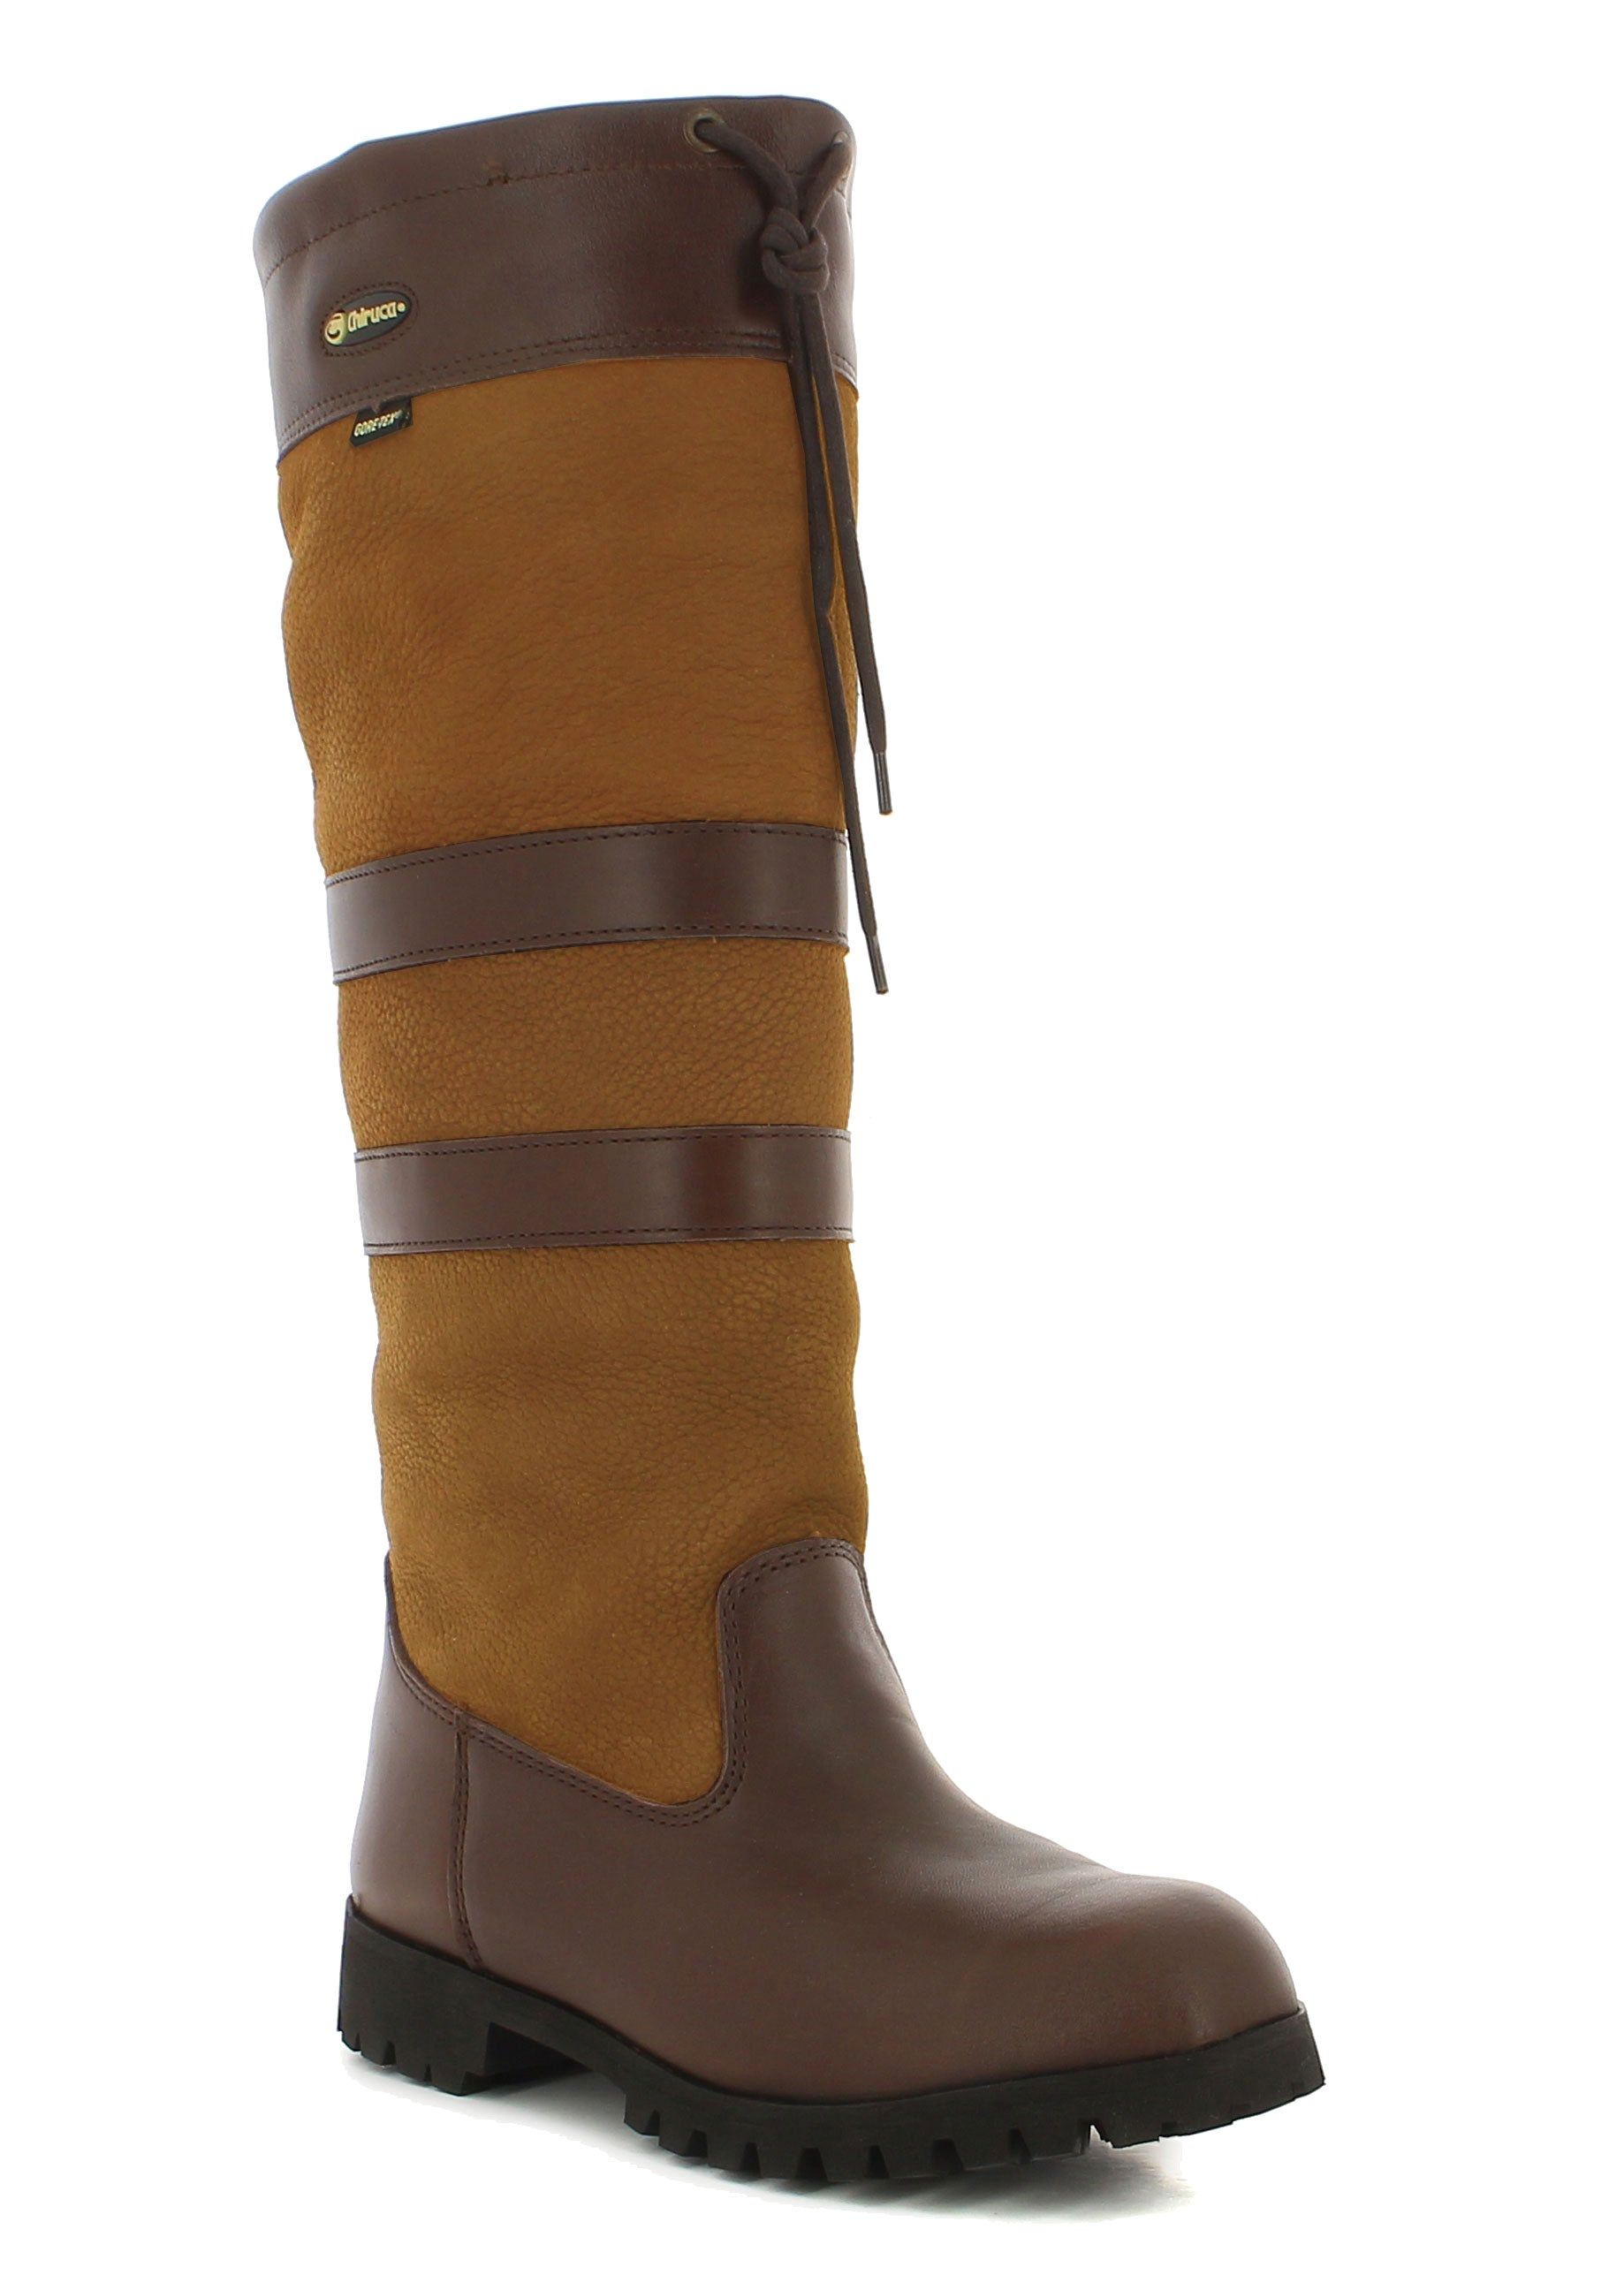 Chelsea Ladies High Leg Leather Boot by Chiruca. Tan colour